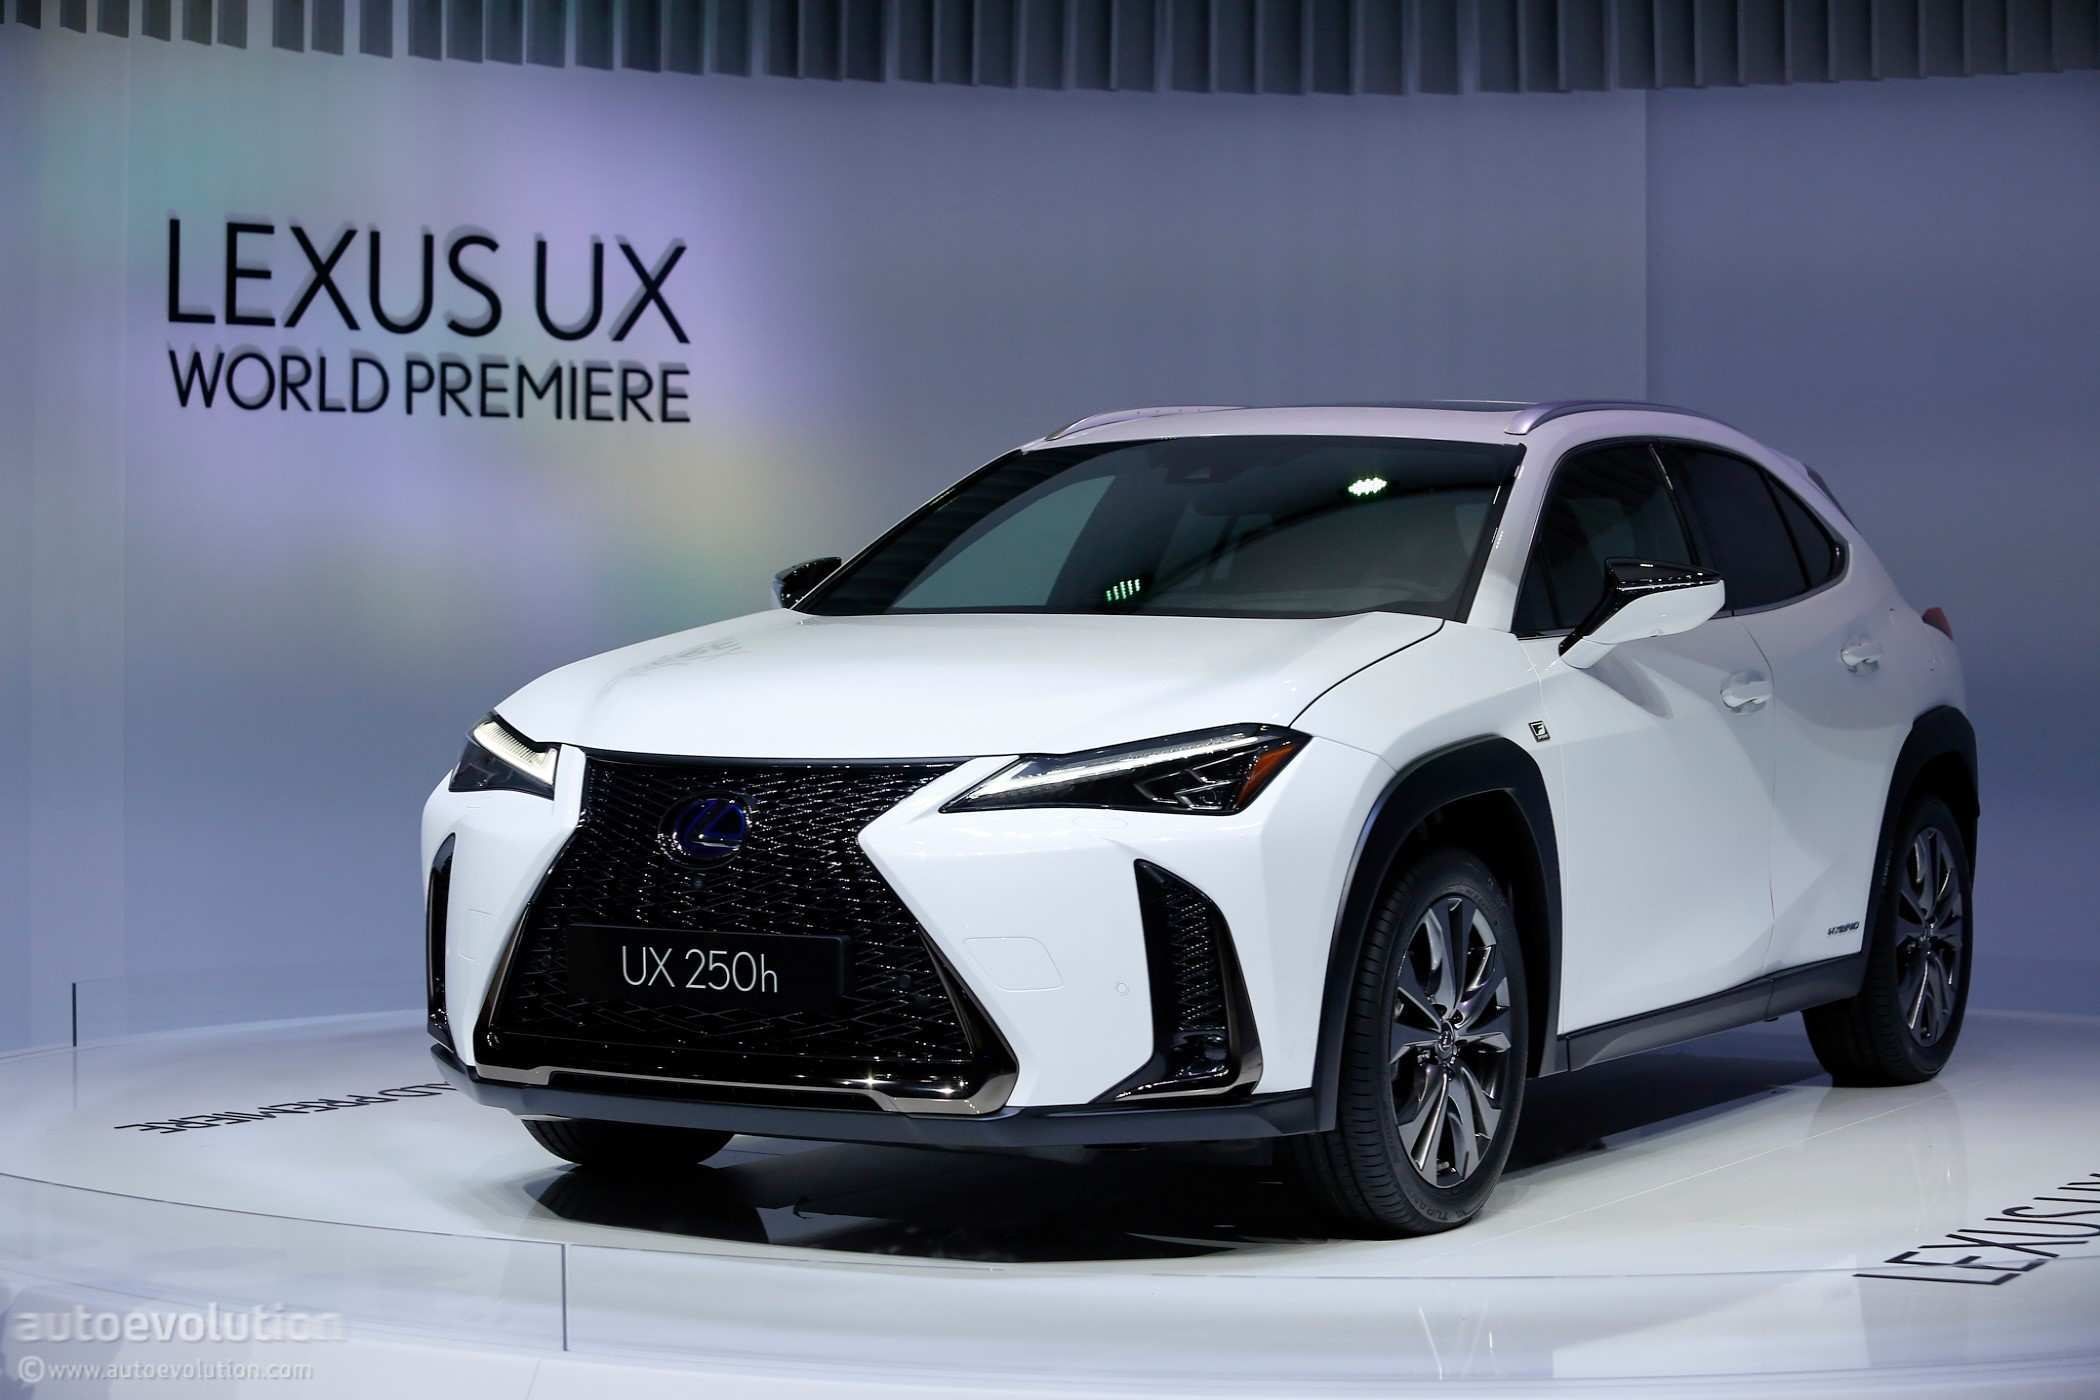 59 New 2020 Lexus Lineup Images with 2020 Lexus Lineup